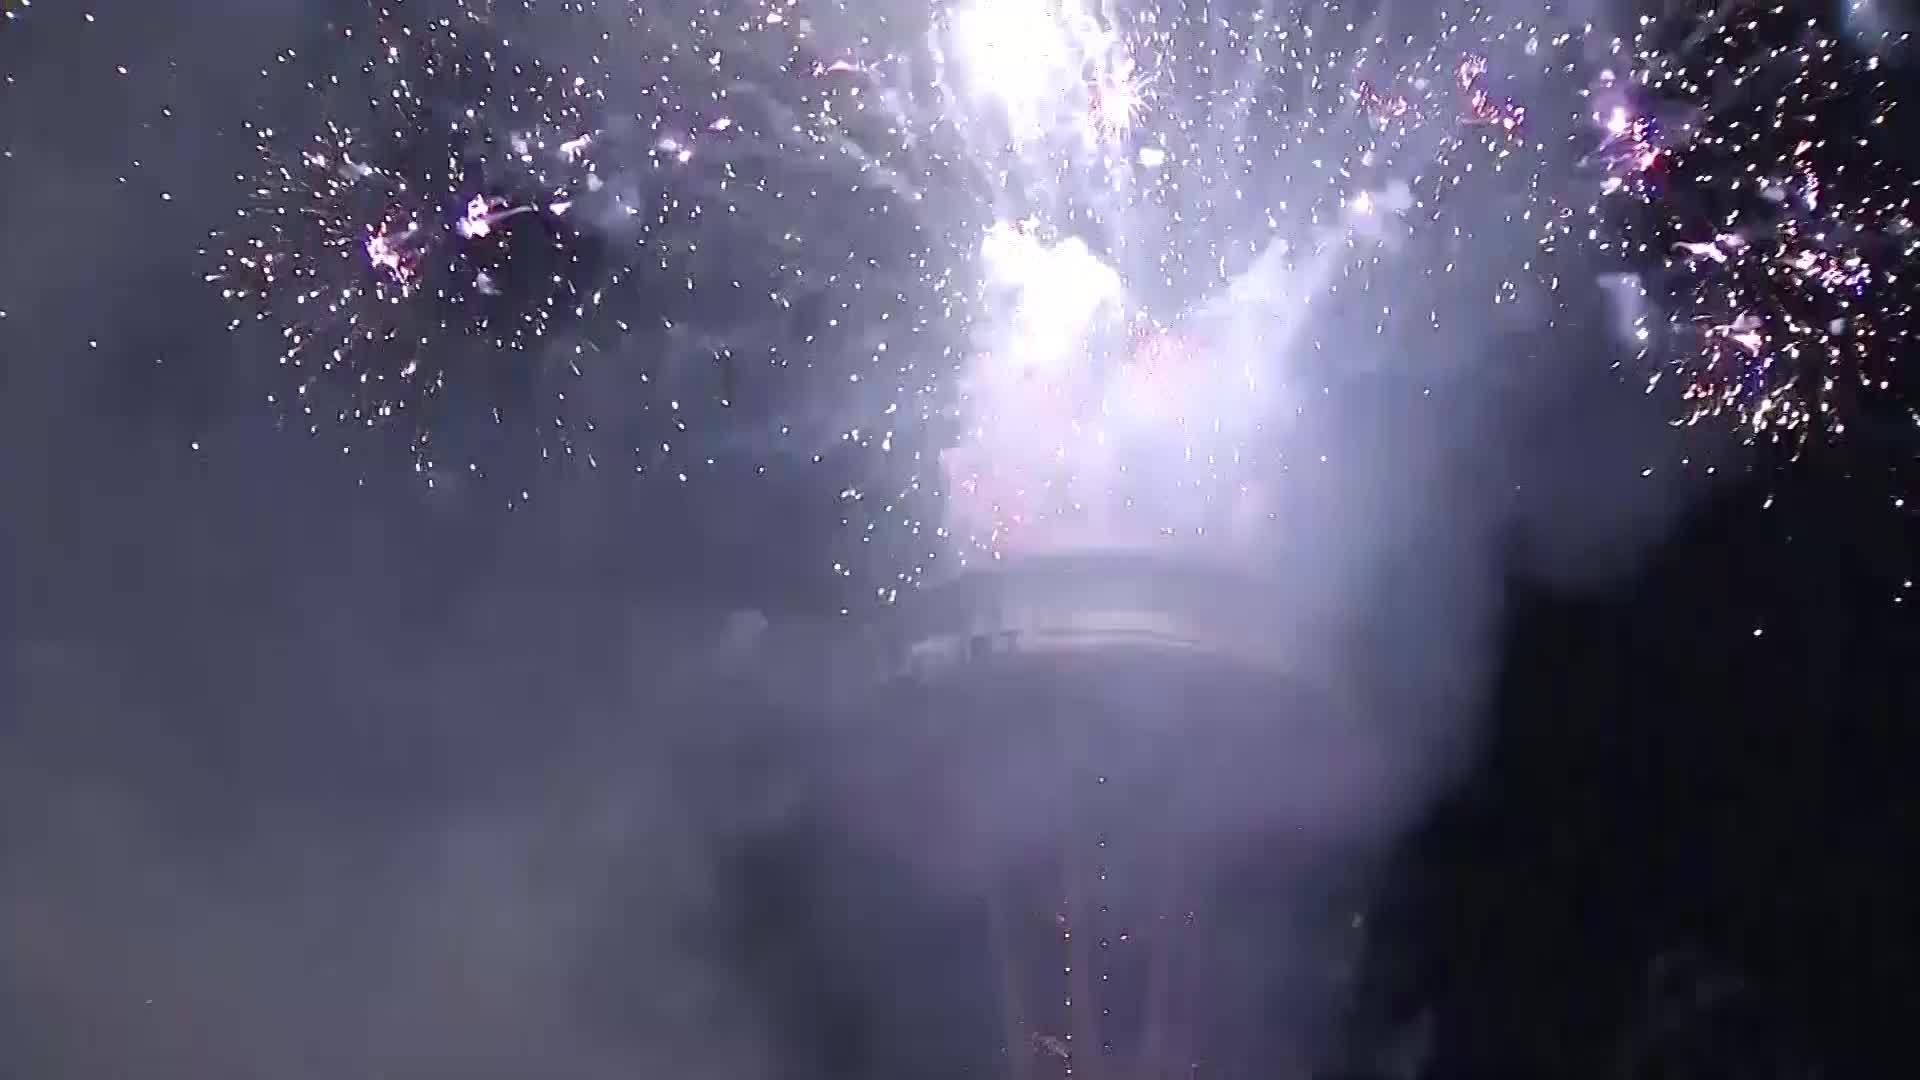 New_Year_s_Eve_Space_Needle_Fireworks_8_20181231235410